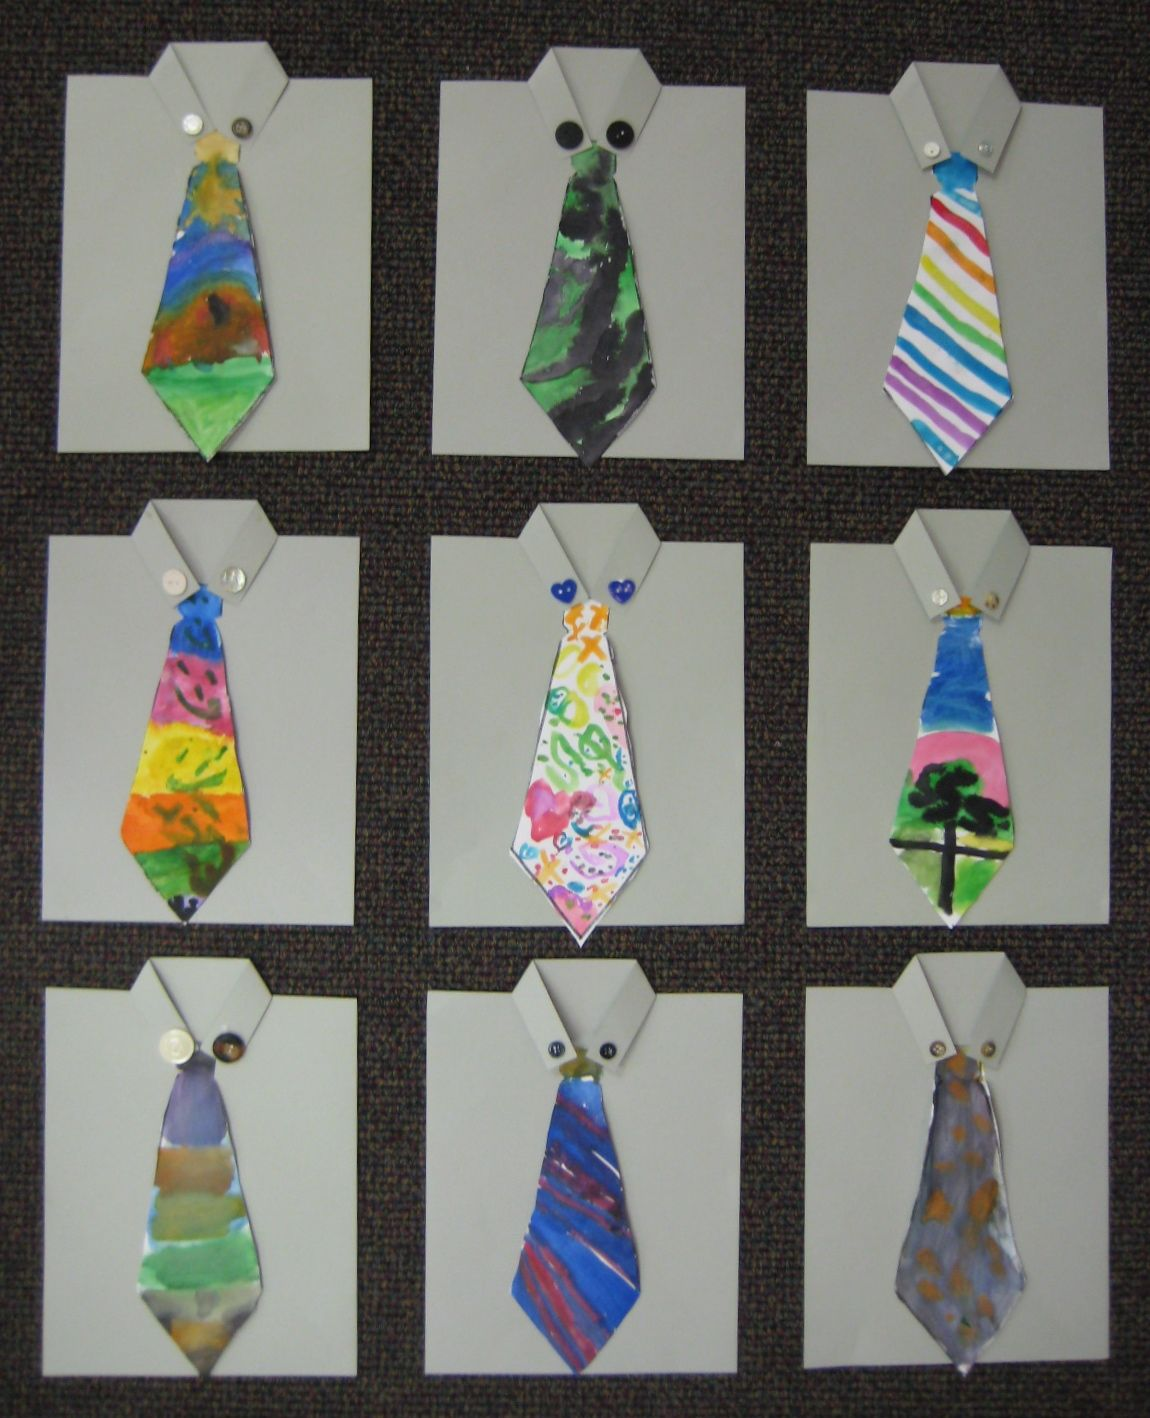 craft class ideas img 1861 jpg s day idea summer class 1461